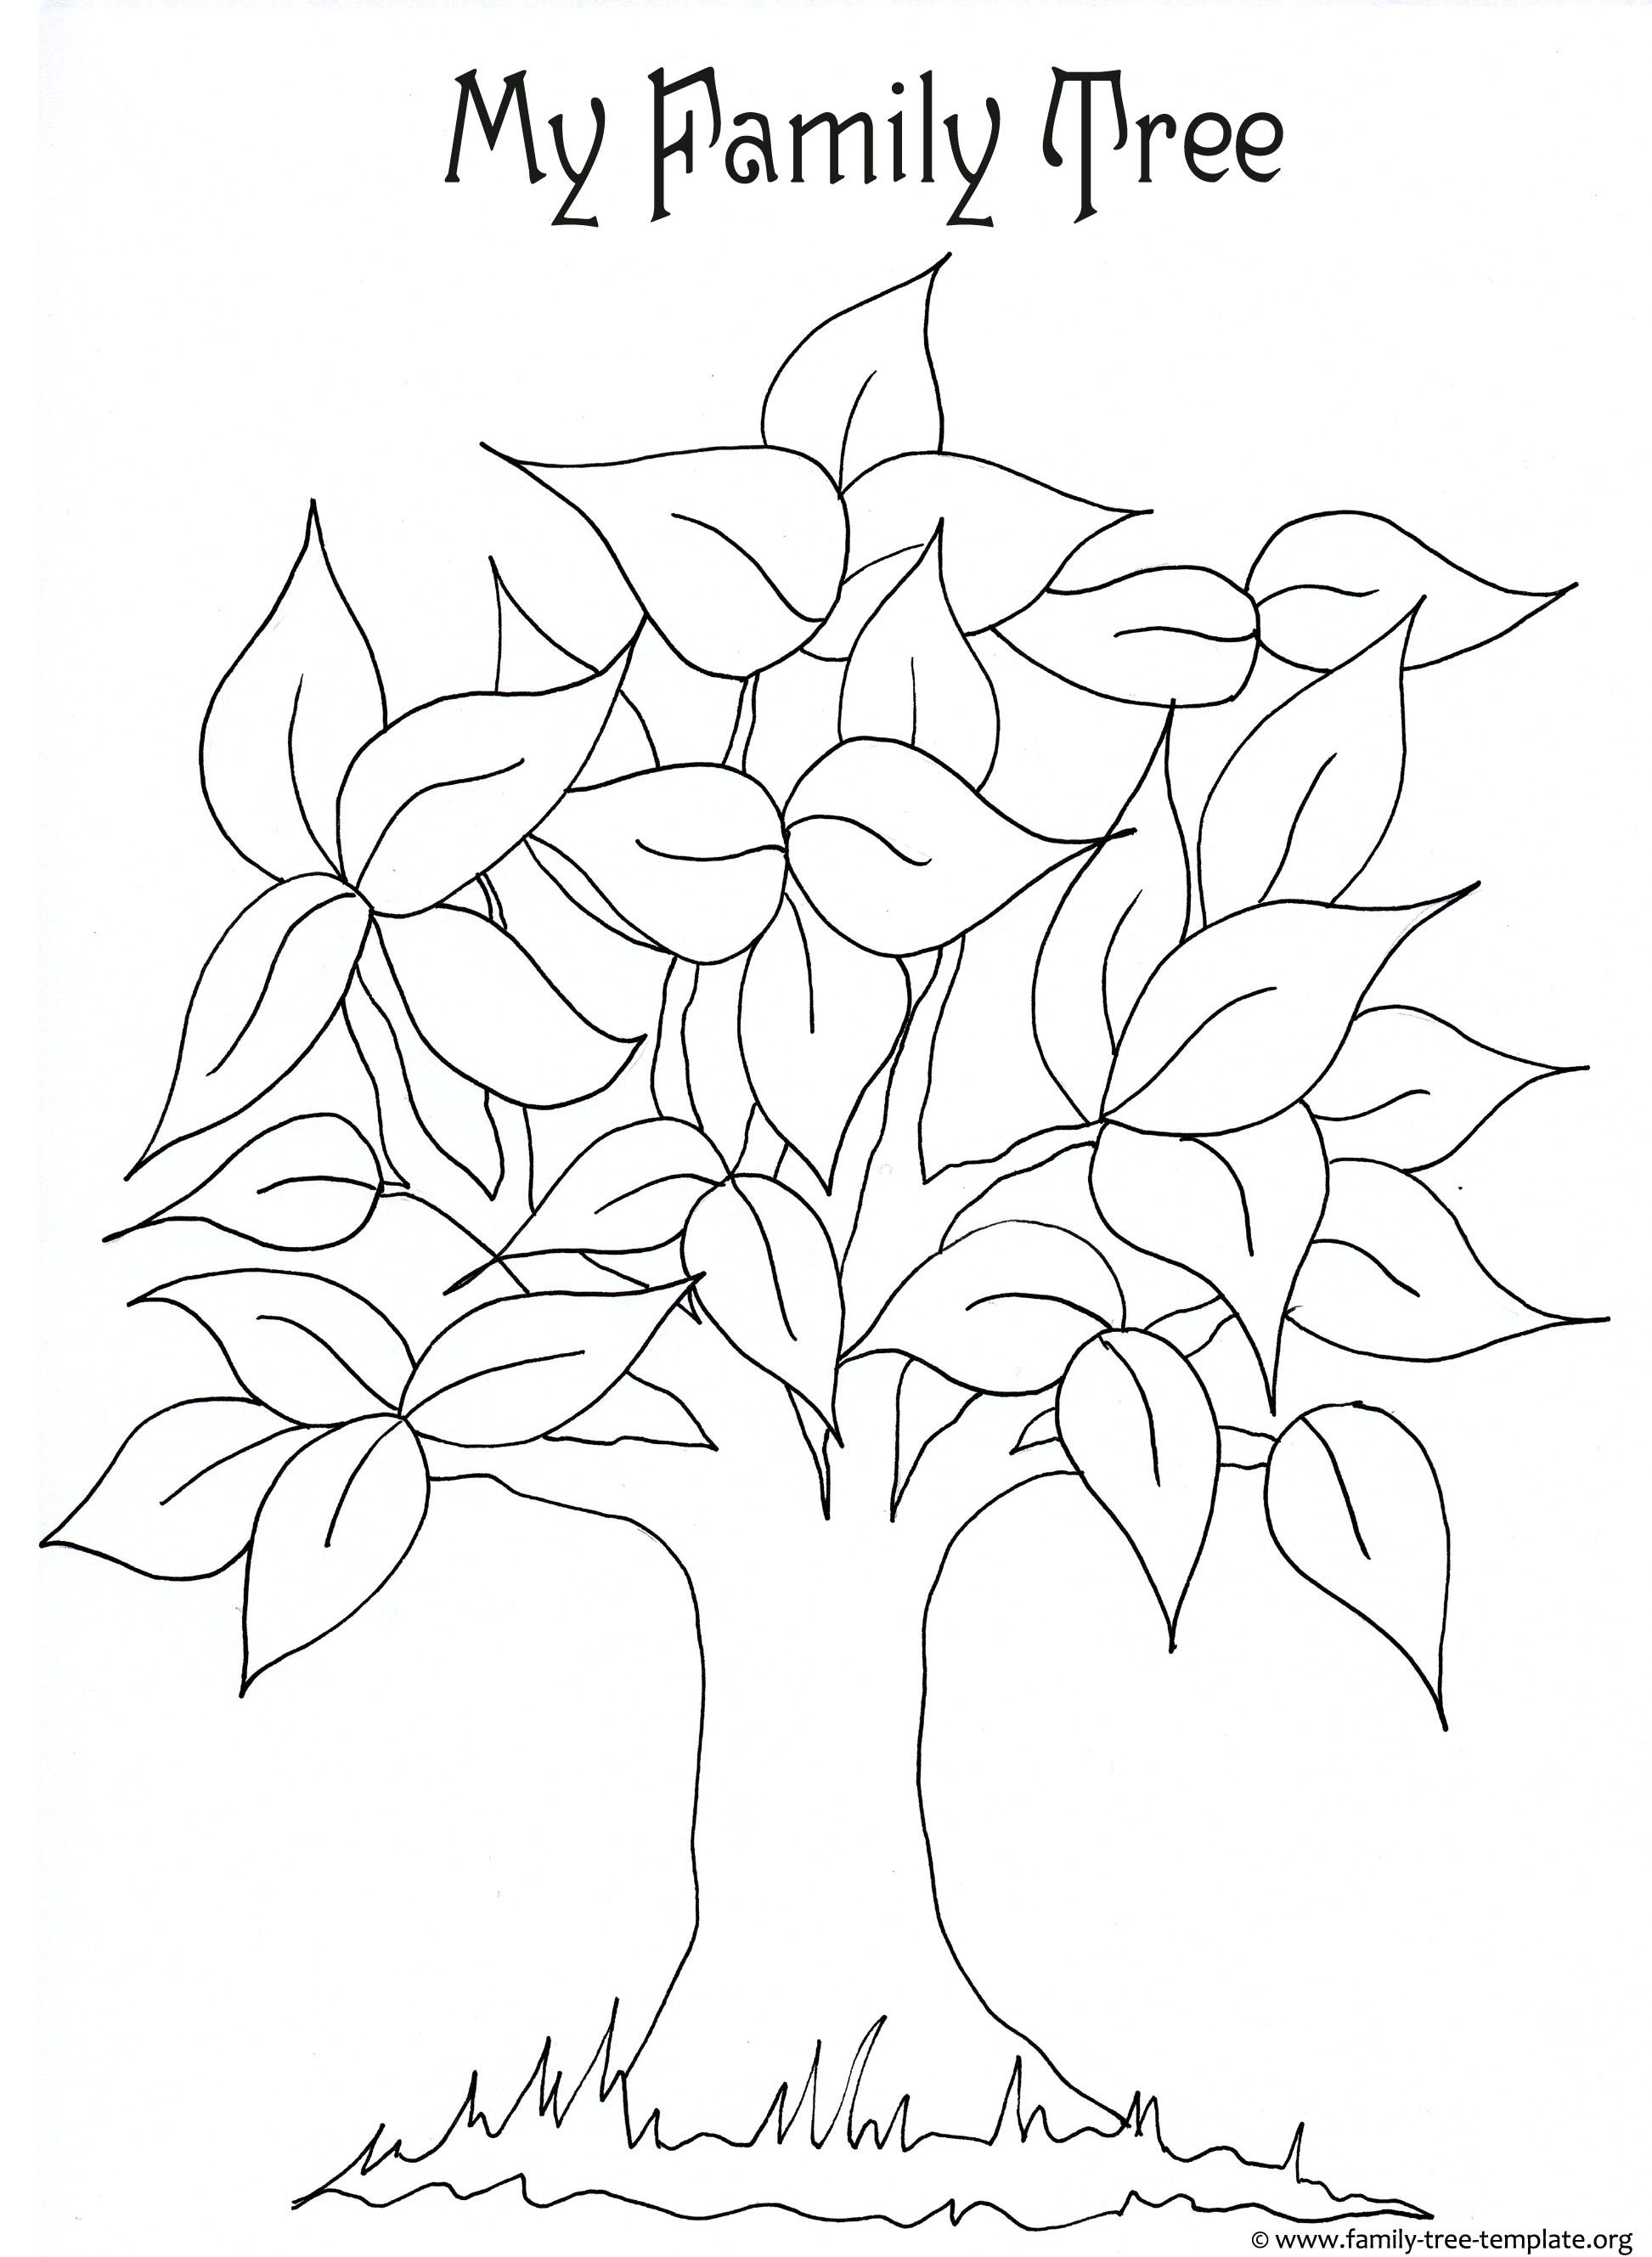 Free Printable Coloring Page For Kids With Leaves And Tree Trunk